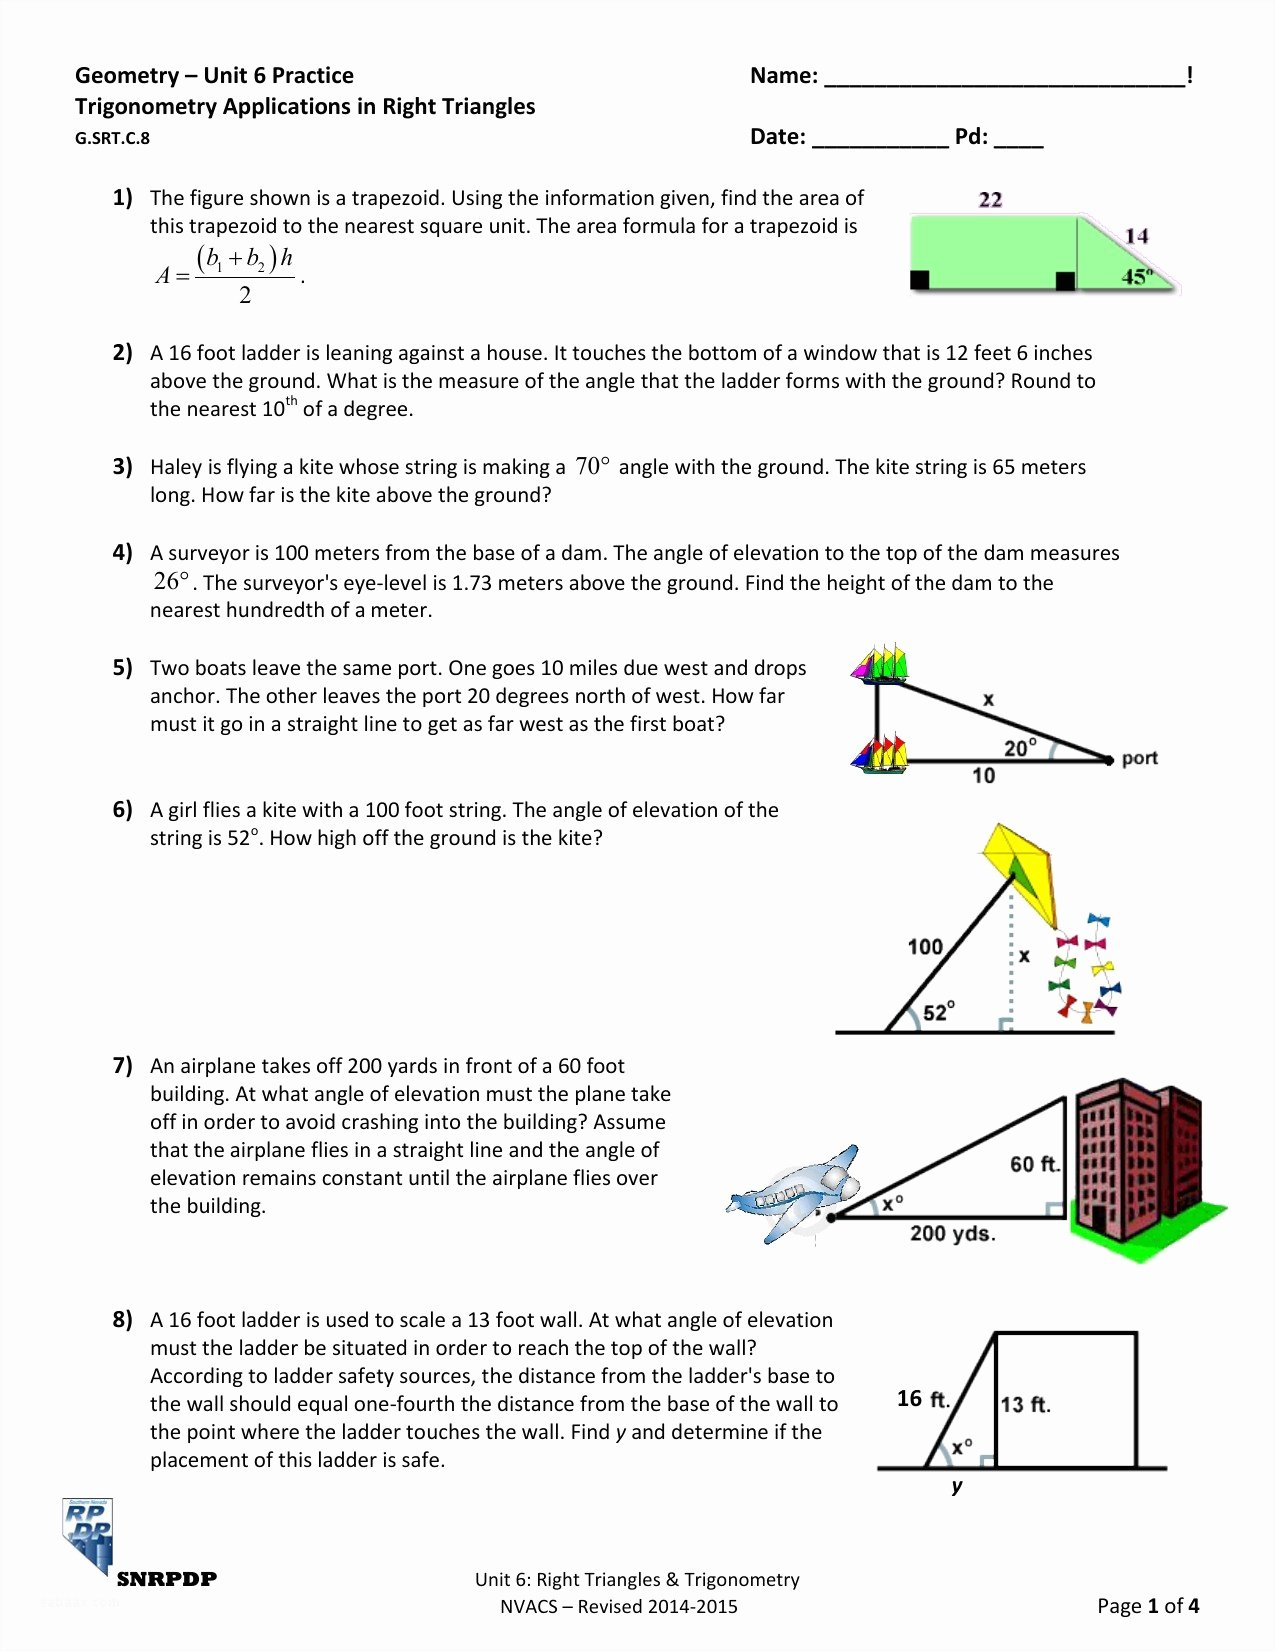 Trigonometry Word Problems Worksheet Answers Inspirational Trig Word Problems Worksheet Funresearcher